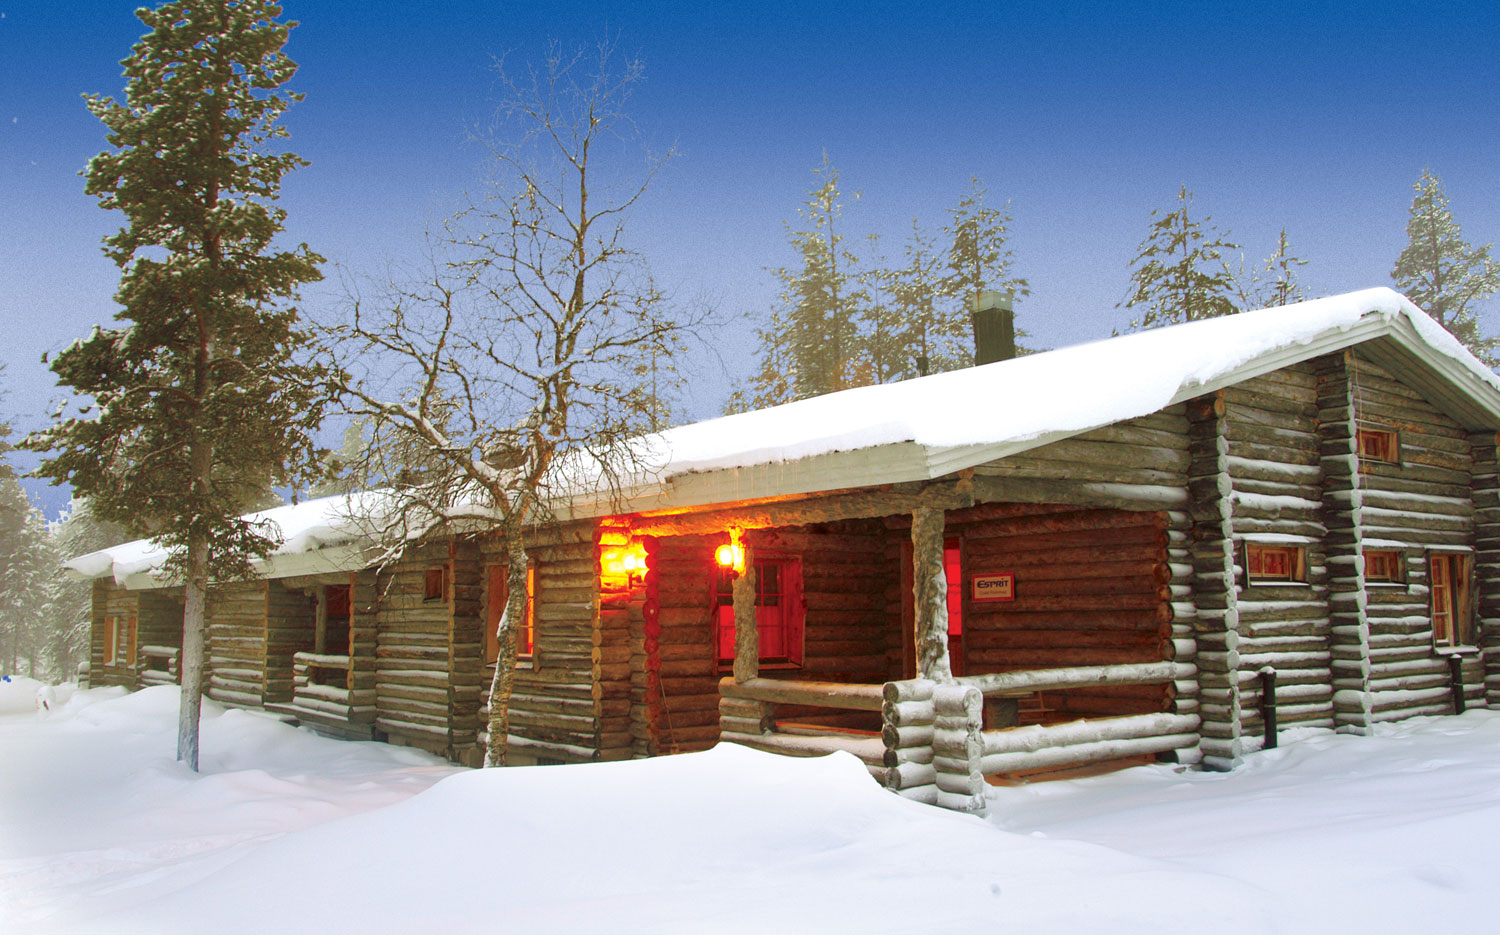 Christmas Cabins - A Typical Cabin Entrance